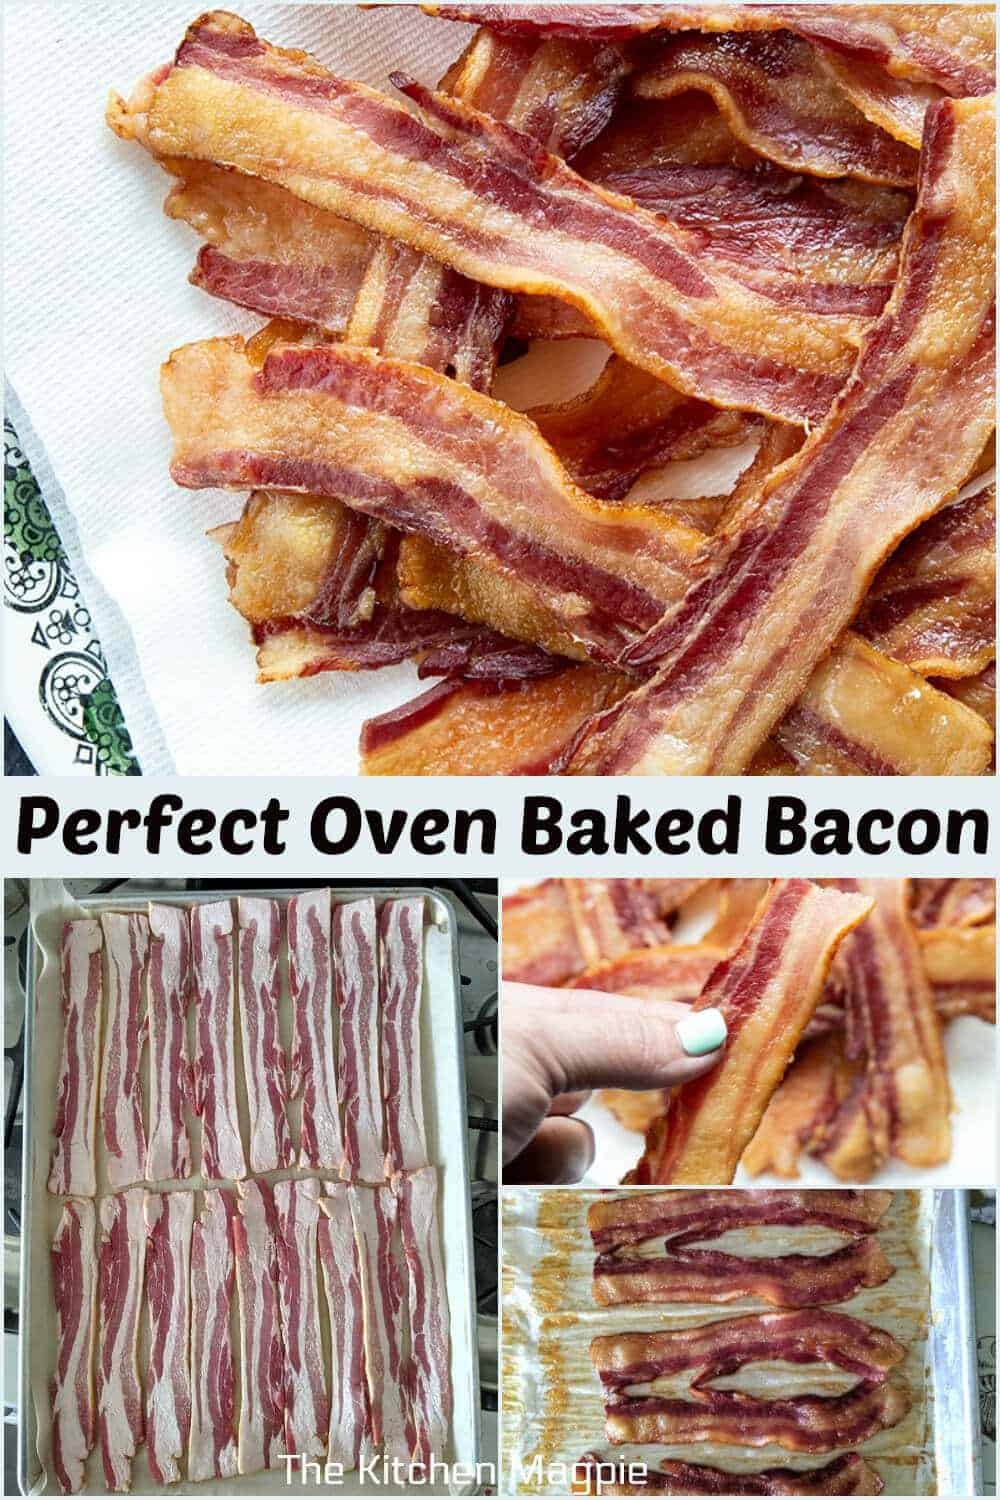 Step by step how to make deliciously crispy bacon in the oven - and what type of bacon is the best bang for your hard earned buck!